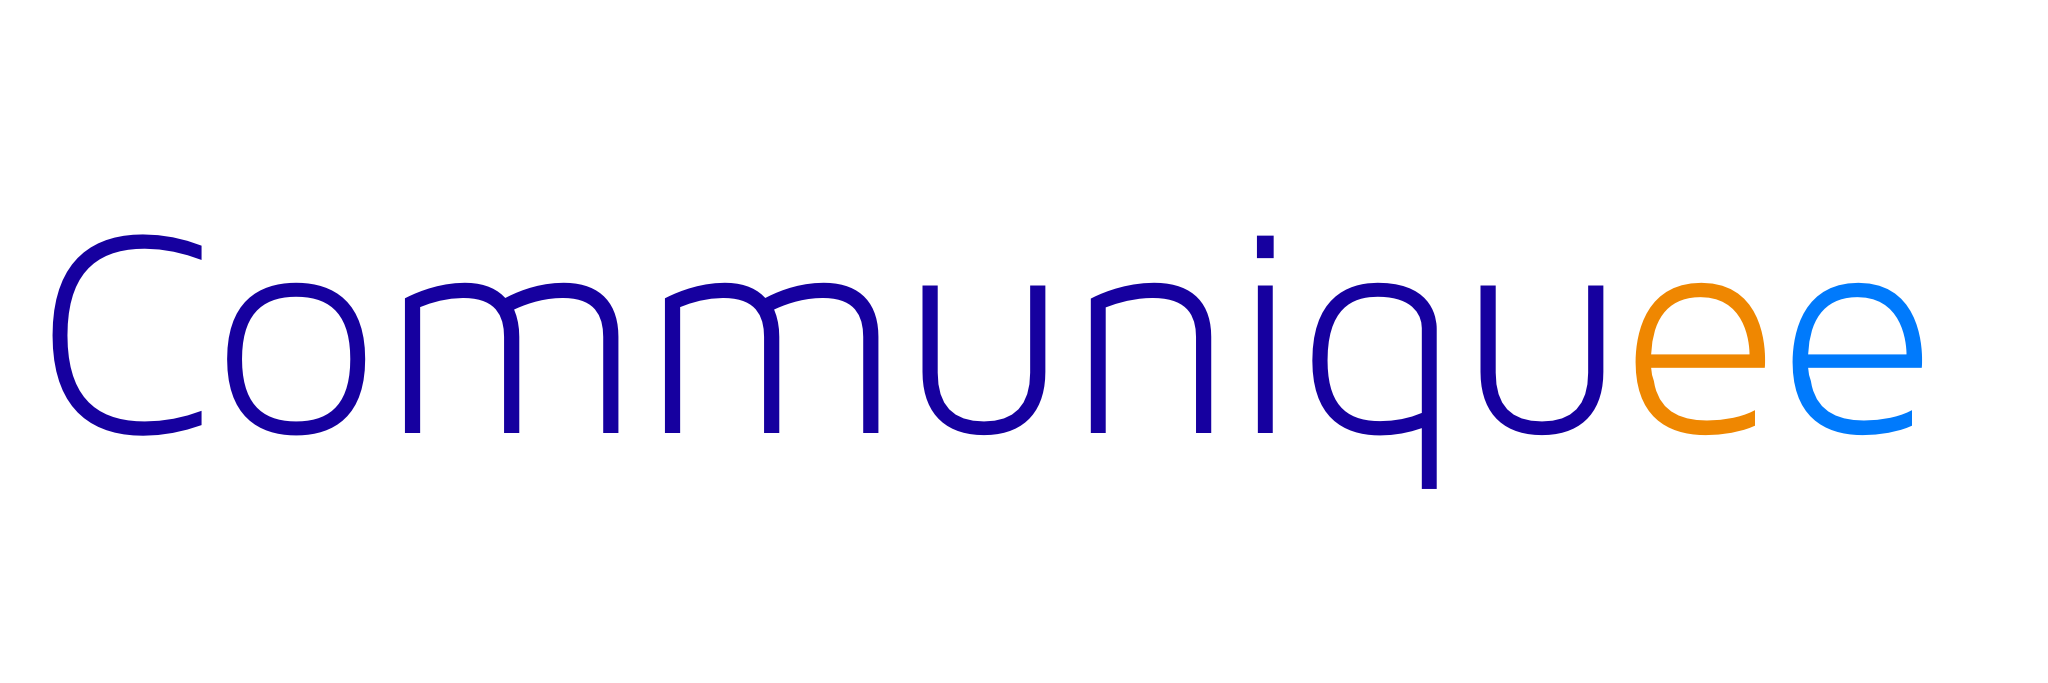 Communiquee – generate multilingual information